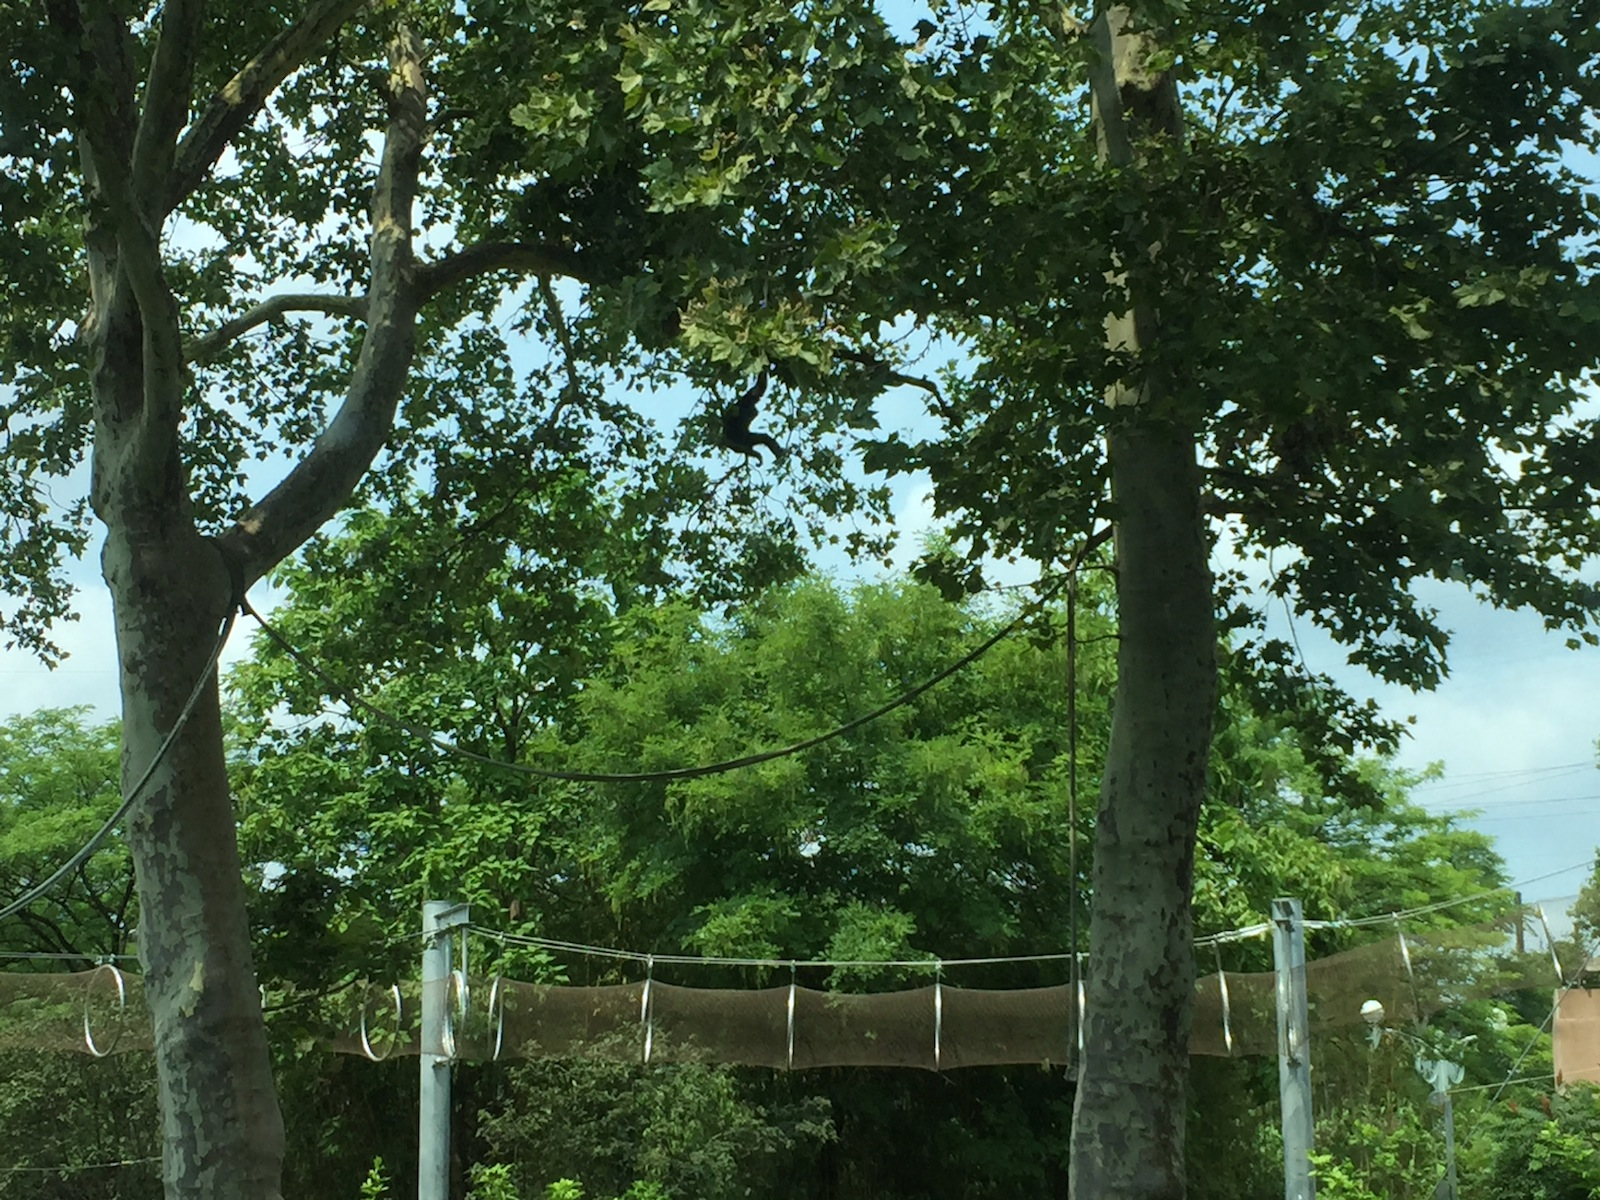 Can You See The Monkey In This Tree?